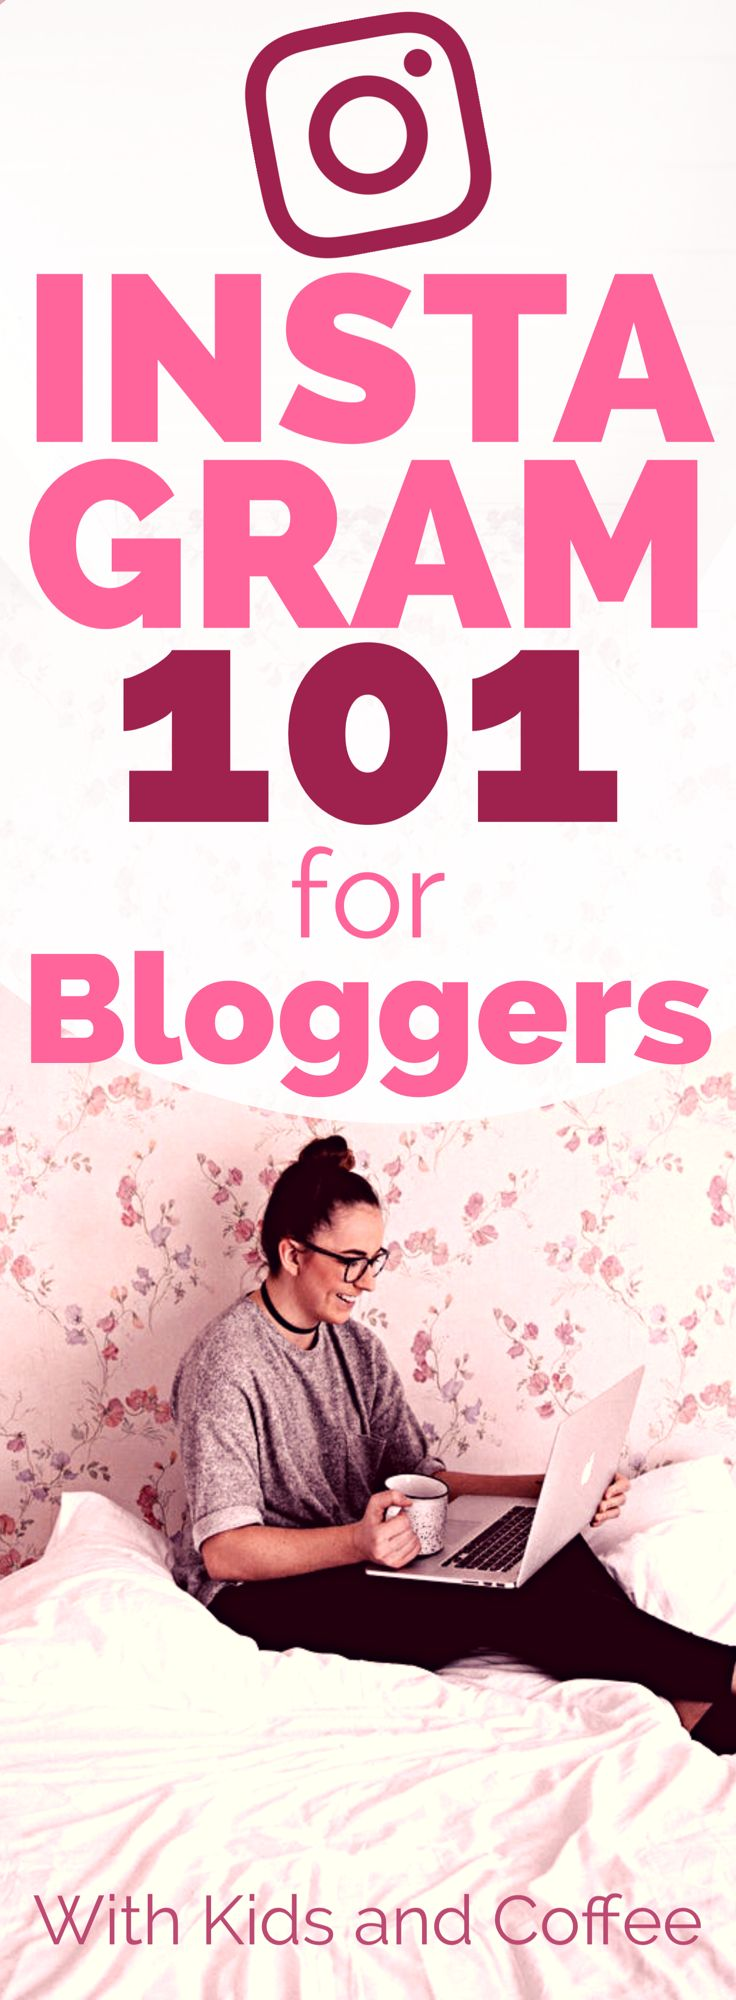 Instagram for Bloggers 101 | If you've started a blog and don't know where to start with social media and Instagram, this post has you covered! From how to start an Instagram account to setting up the perfect Instagram profile and finding hashtags, these tips and tricks will help you Instagram for Business like a pro in no time. #Instagram #Blogging